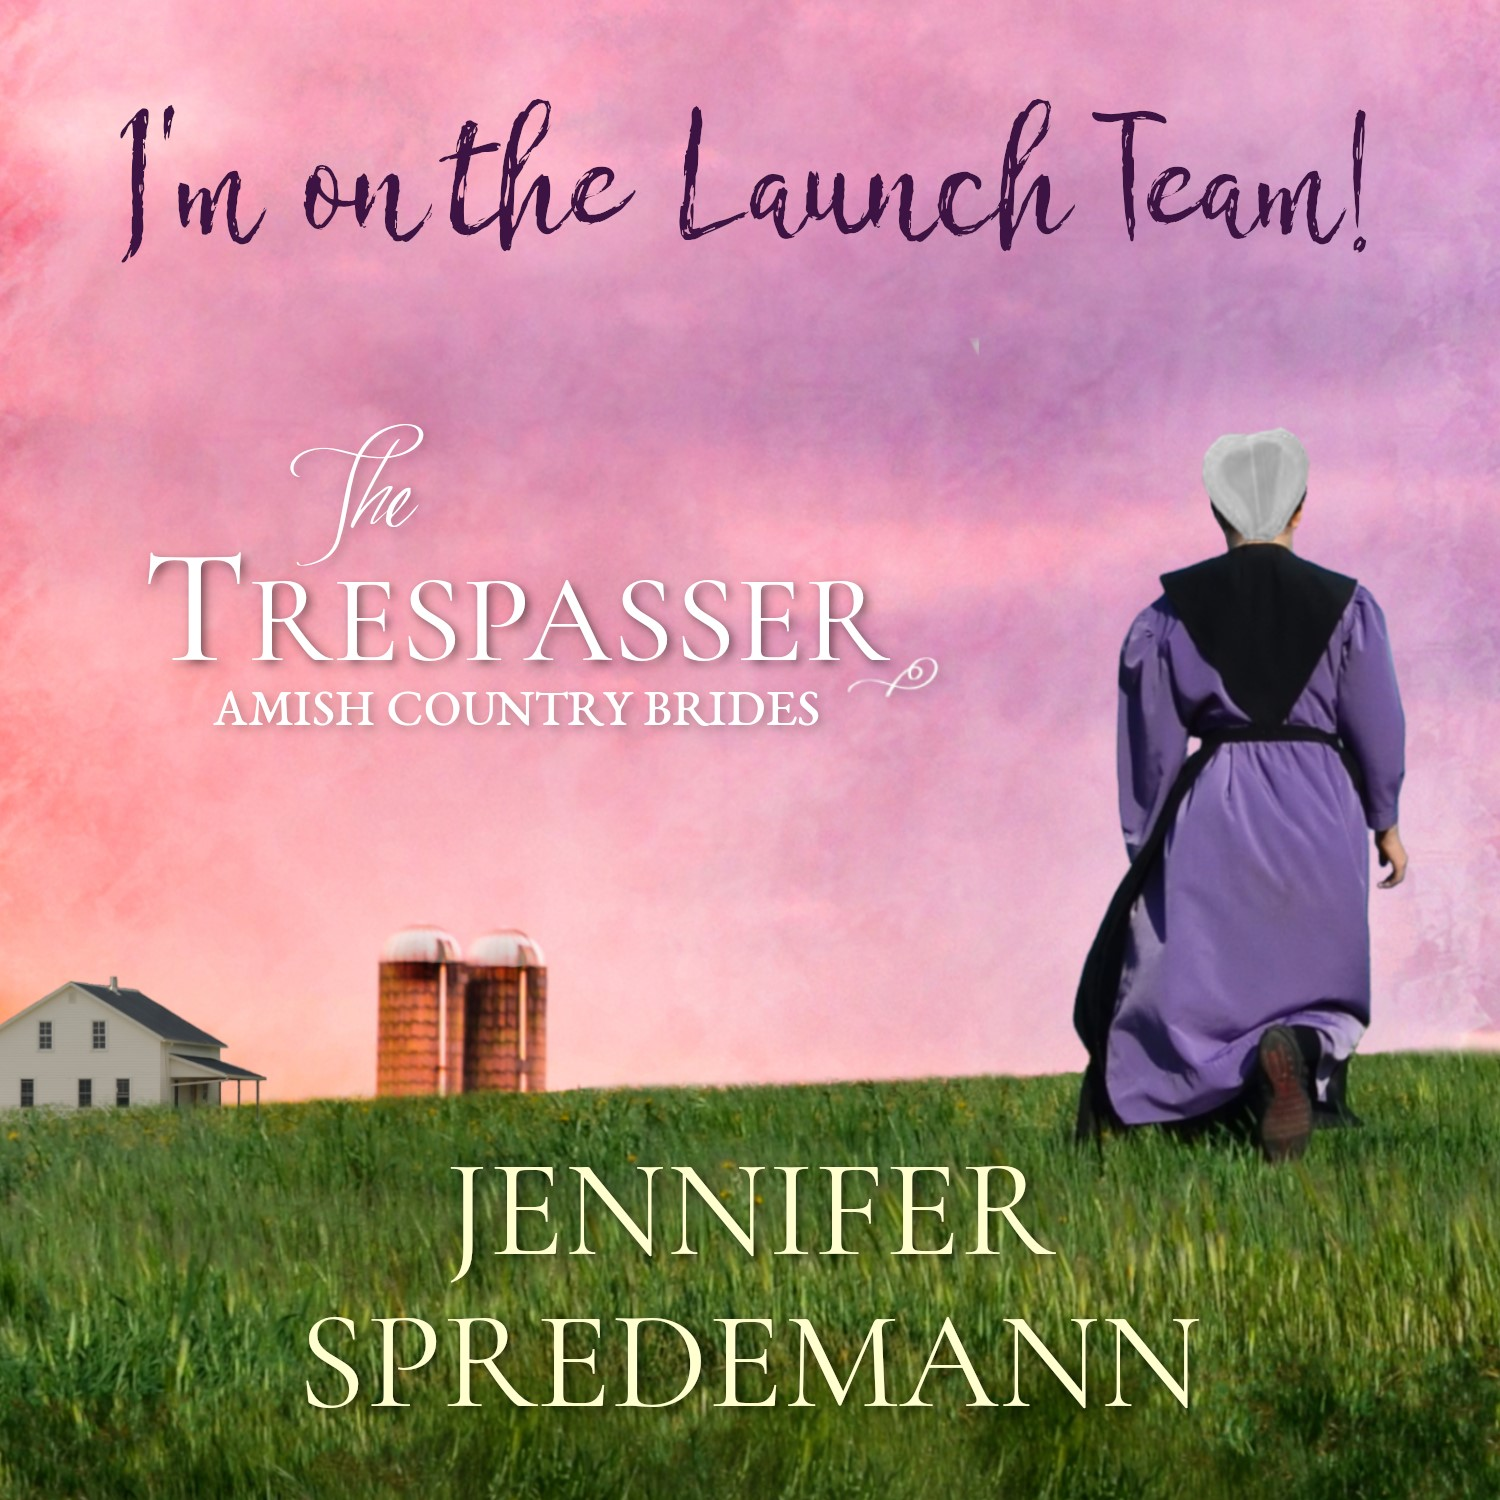 Jennifer Spredeman Launch Team